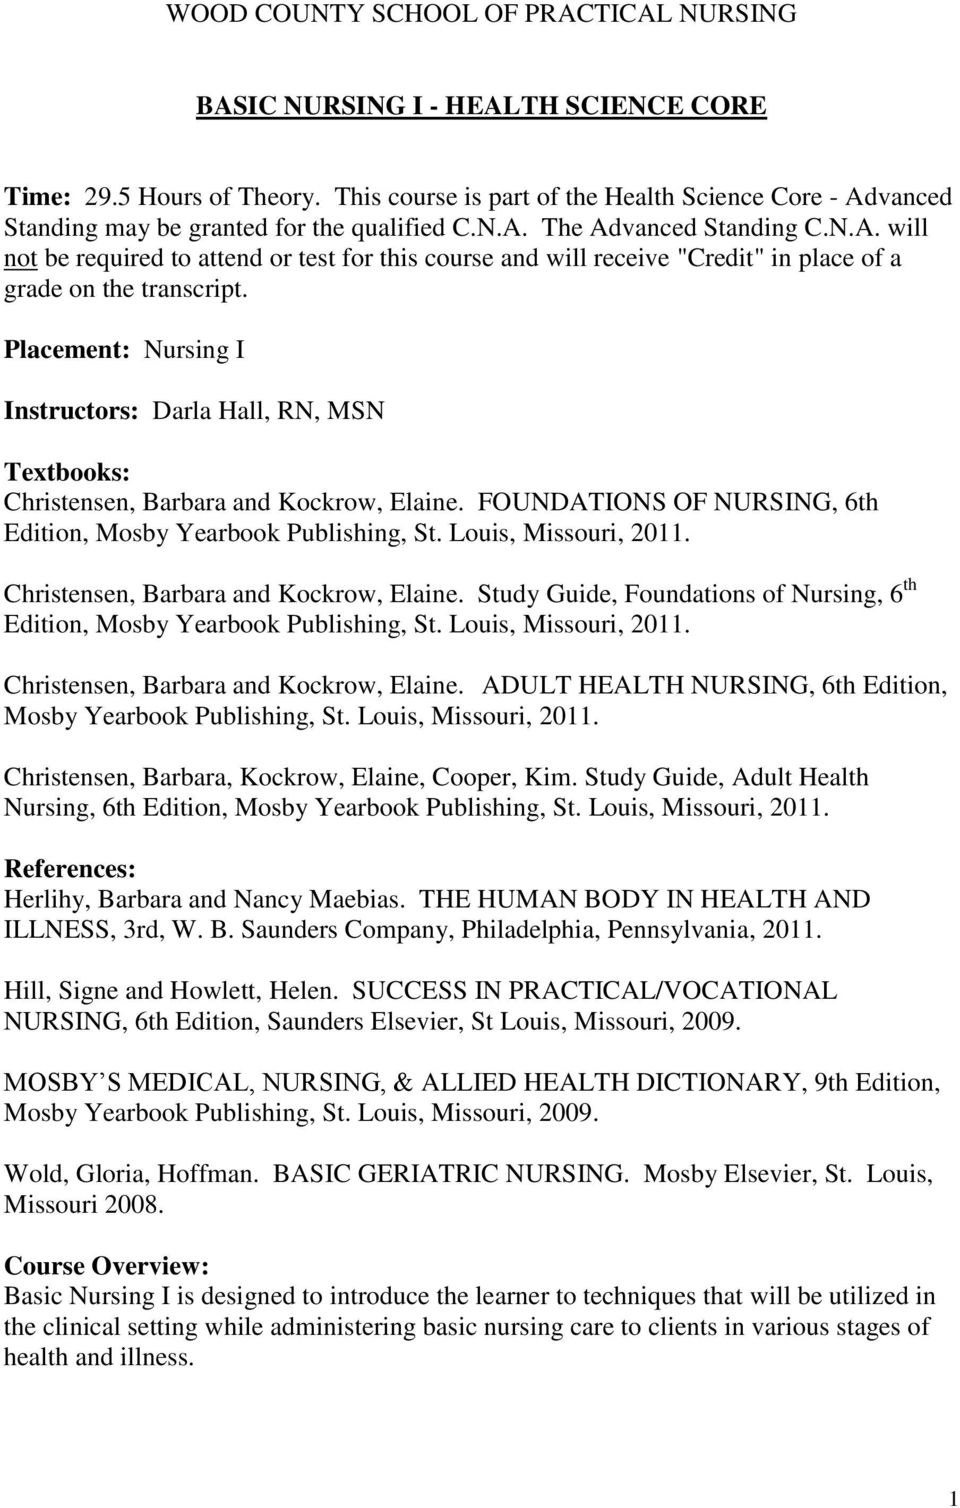 Placement: Nursing I Instructors: Darla Hall, RN, MSN Textbooks: Christensen, Barbara and Kockrow, Elaine. FOUNDATIONS OF NURSING, 6th Edition, Mosby Yearbook Publishing, St. Louis, Missouri, 2011.